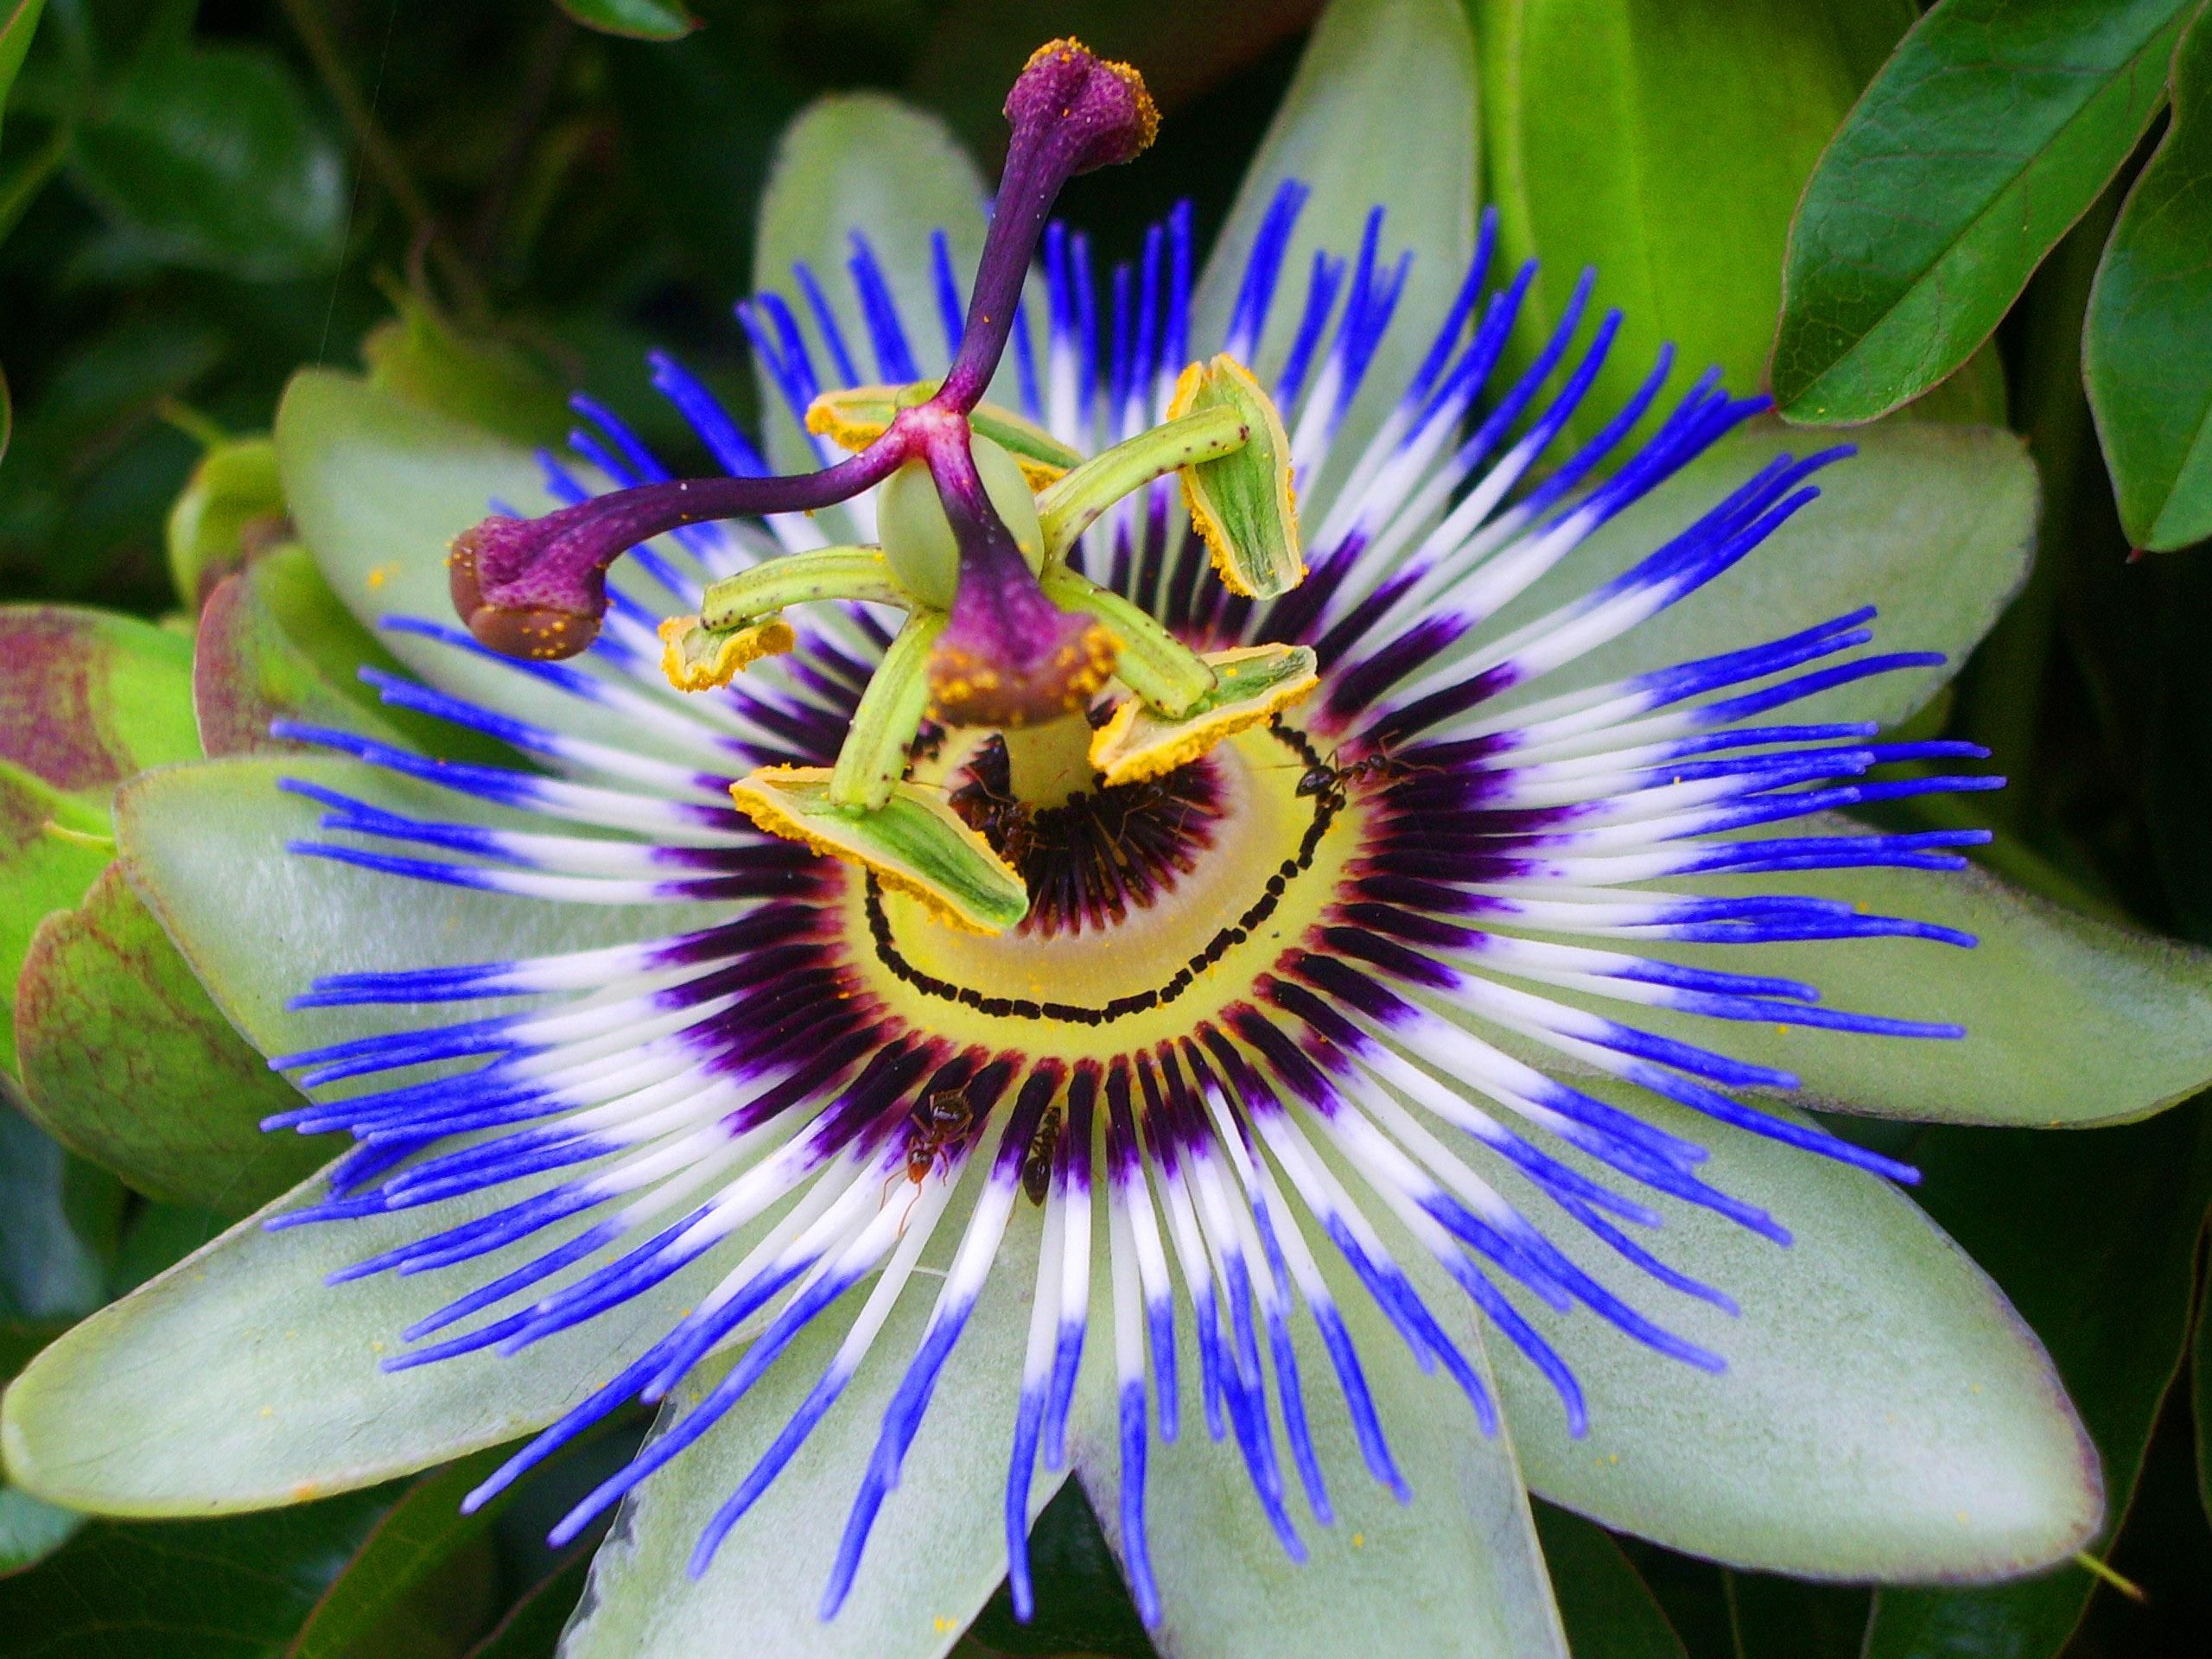 Passion fruit flower hd passionfruit flower wallpaper blomme passion fruit flower hd passionfruit flower wallpaper dhlflorist Images